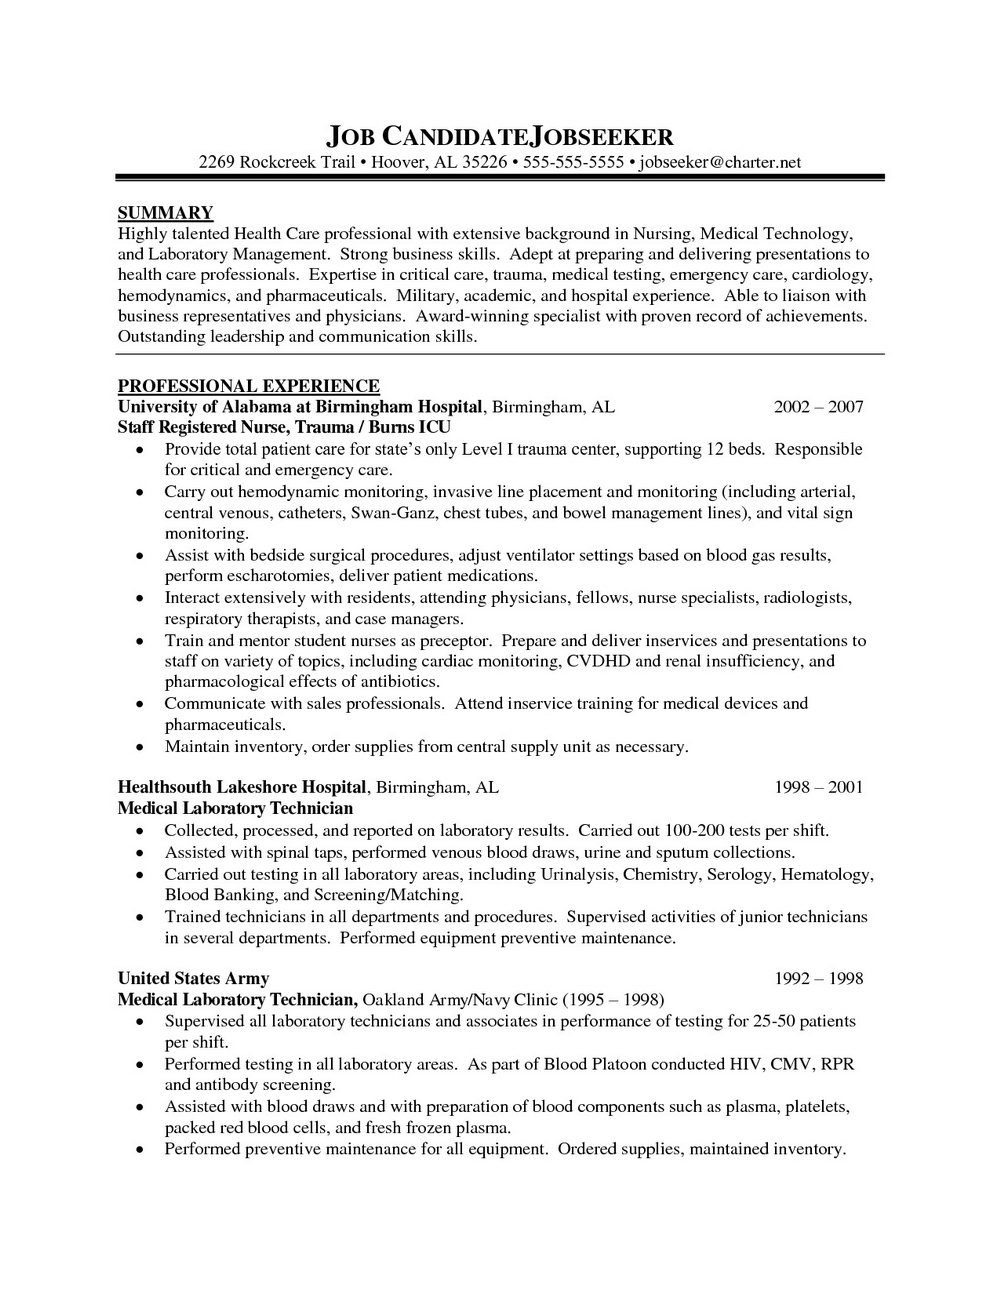 Resume Summary For Registered Nurse